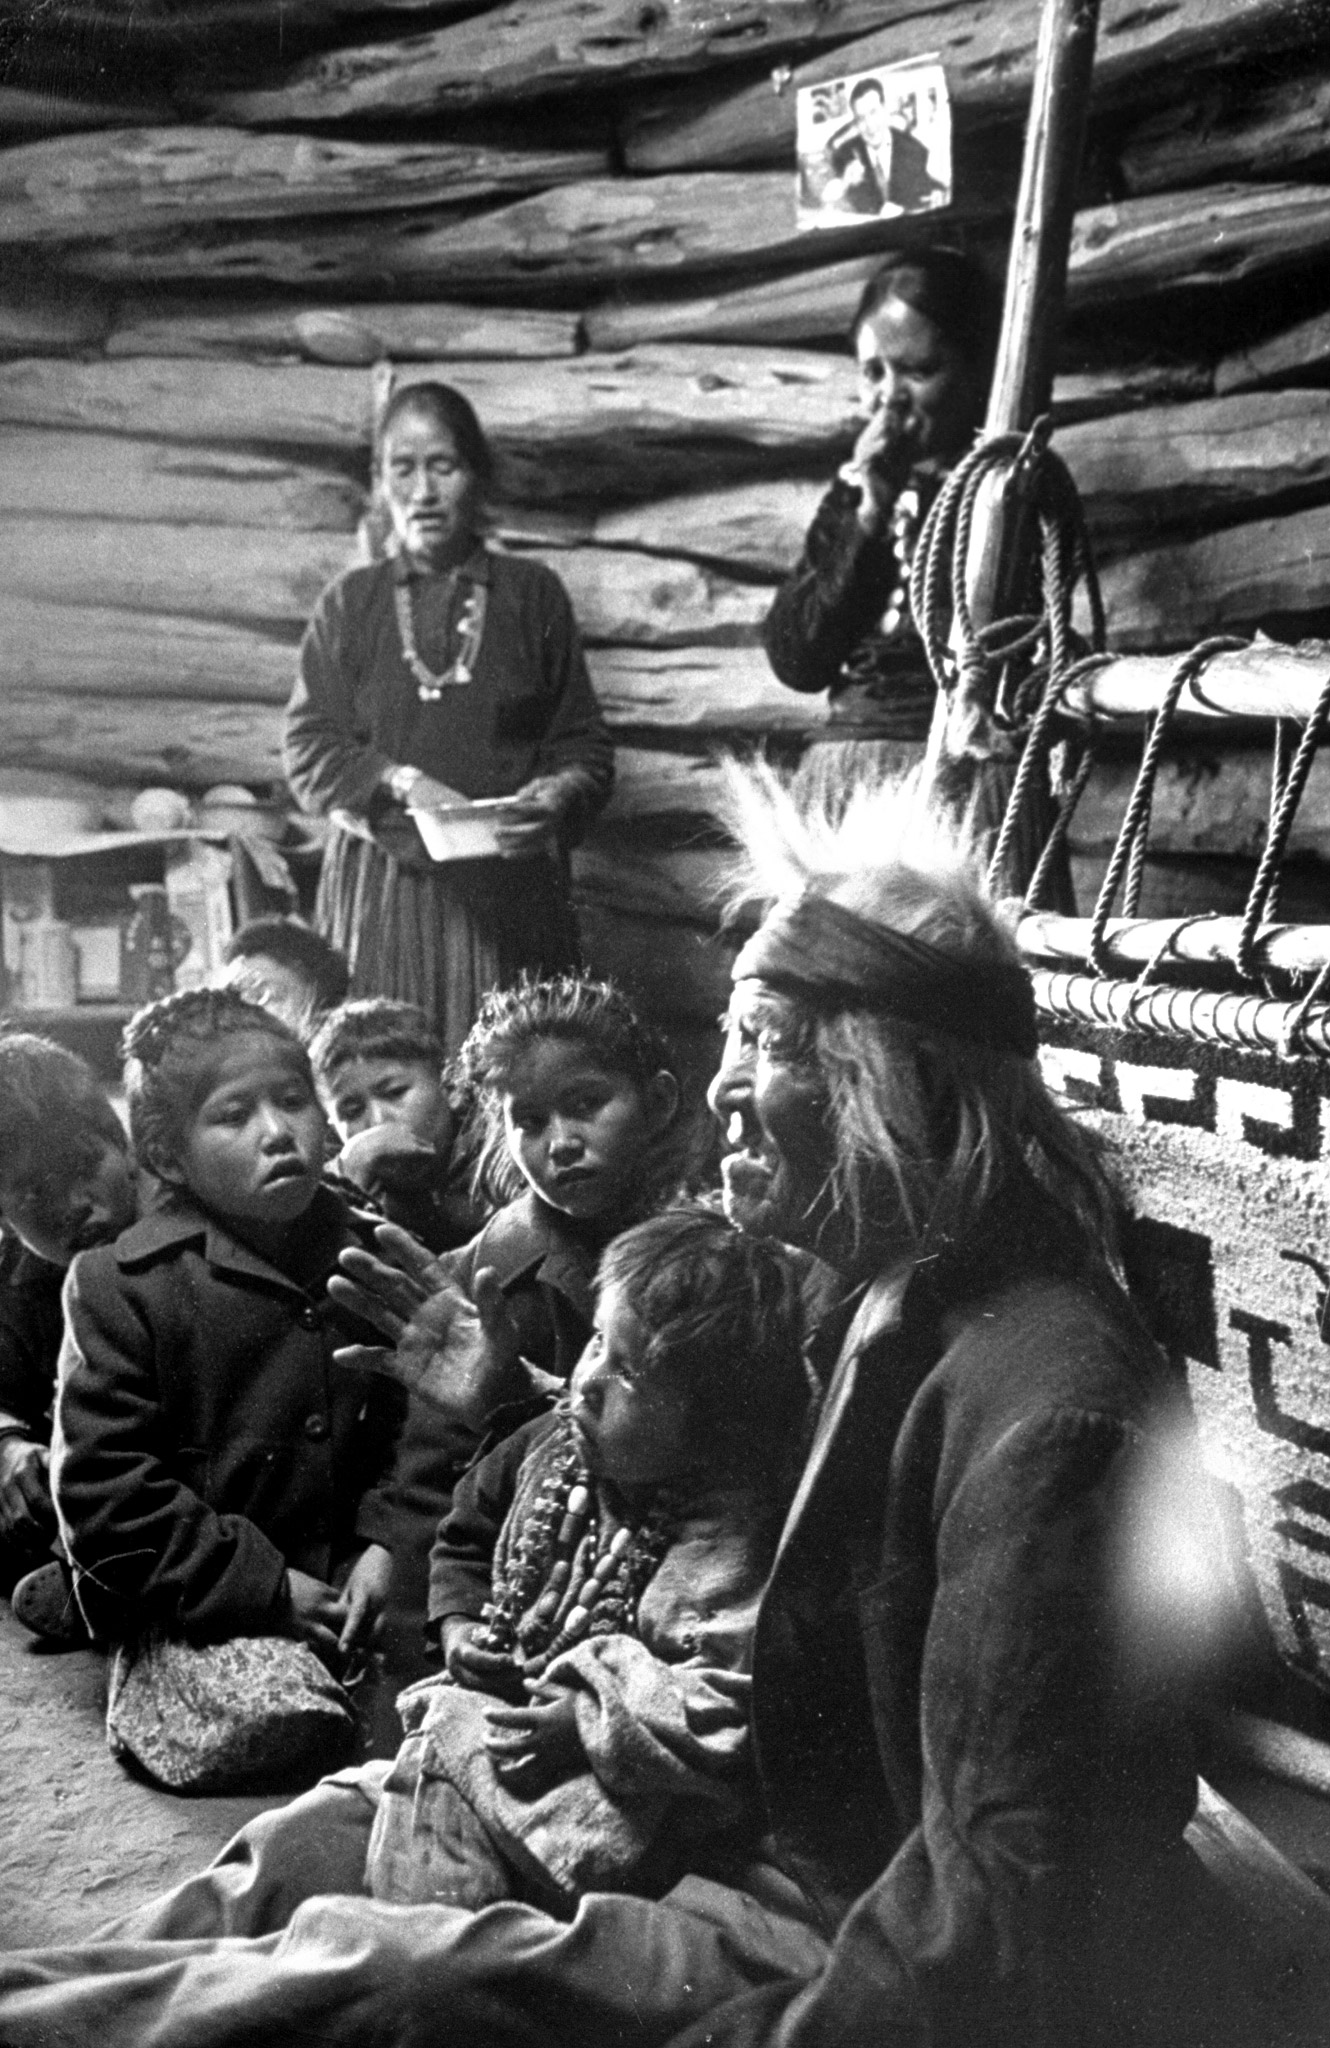 Caption from LIFE. Seated close to the evening fire, old man Gray Mountain, 91, tells his small grandchildren legends about the early days of the Navajo people.